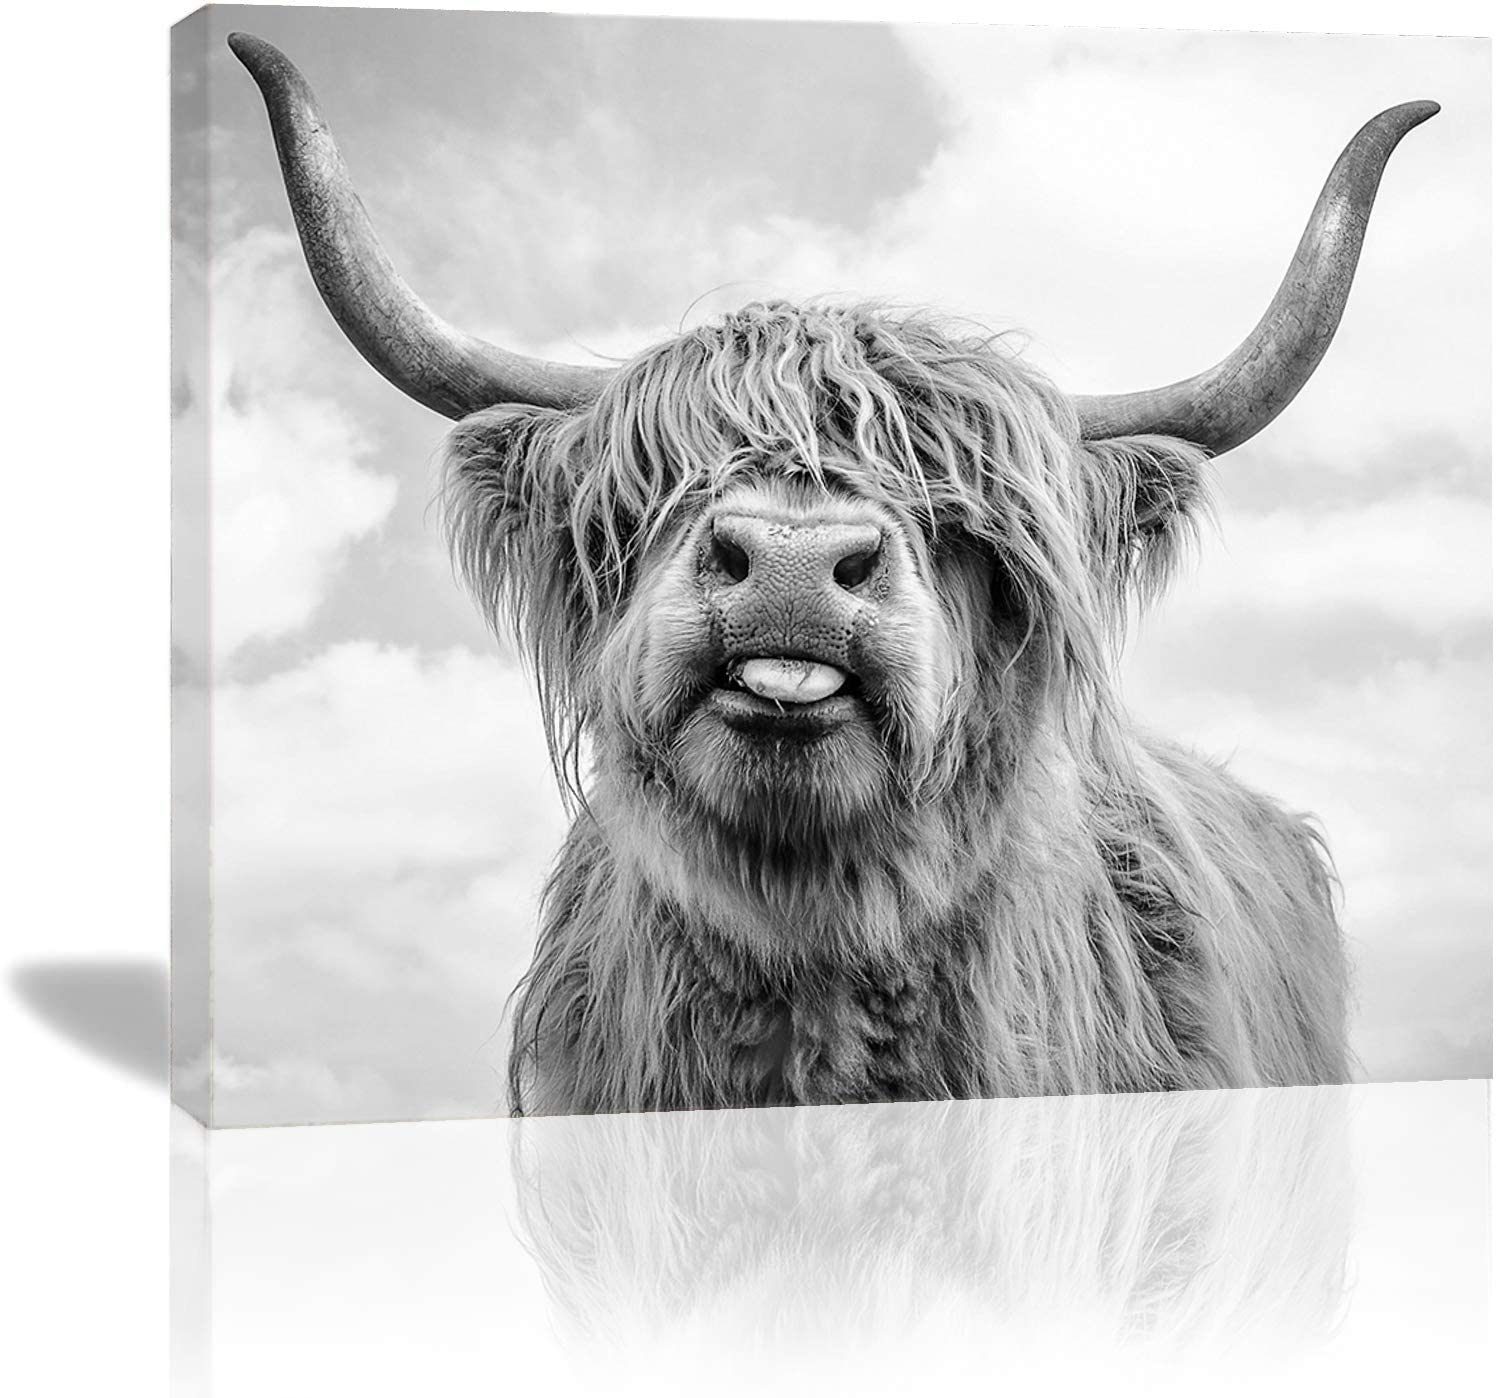 Vantboo Highland Cattle Cow Canvas Prints Wall Art Paintings Home Decor Artworks Pictures for Living Room Bedroom Bathroom Decoration Ready to Hang 16 X 20 Inches